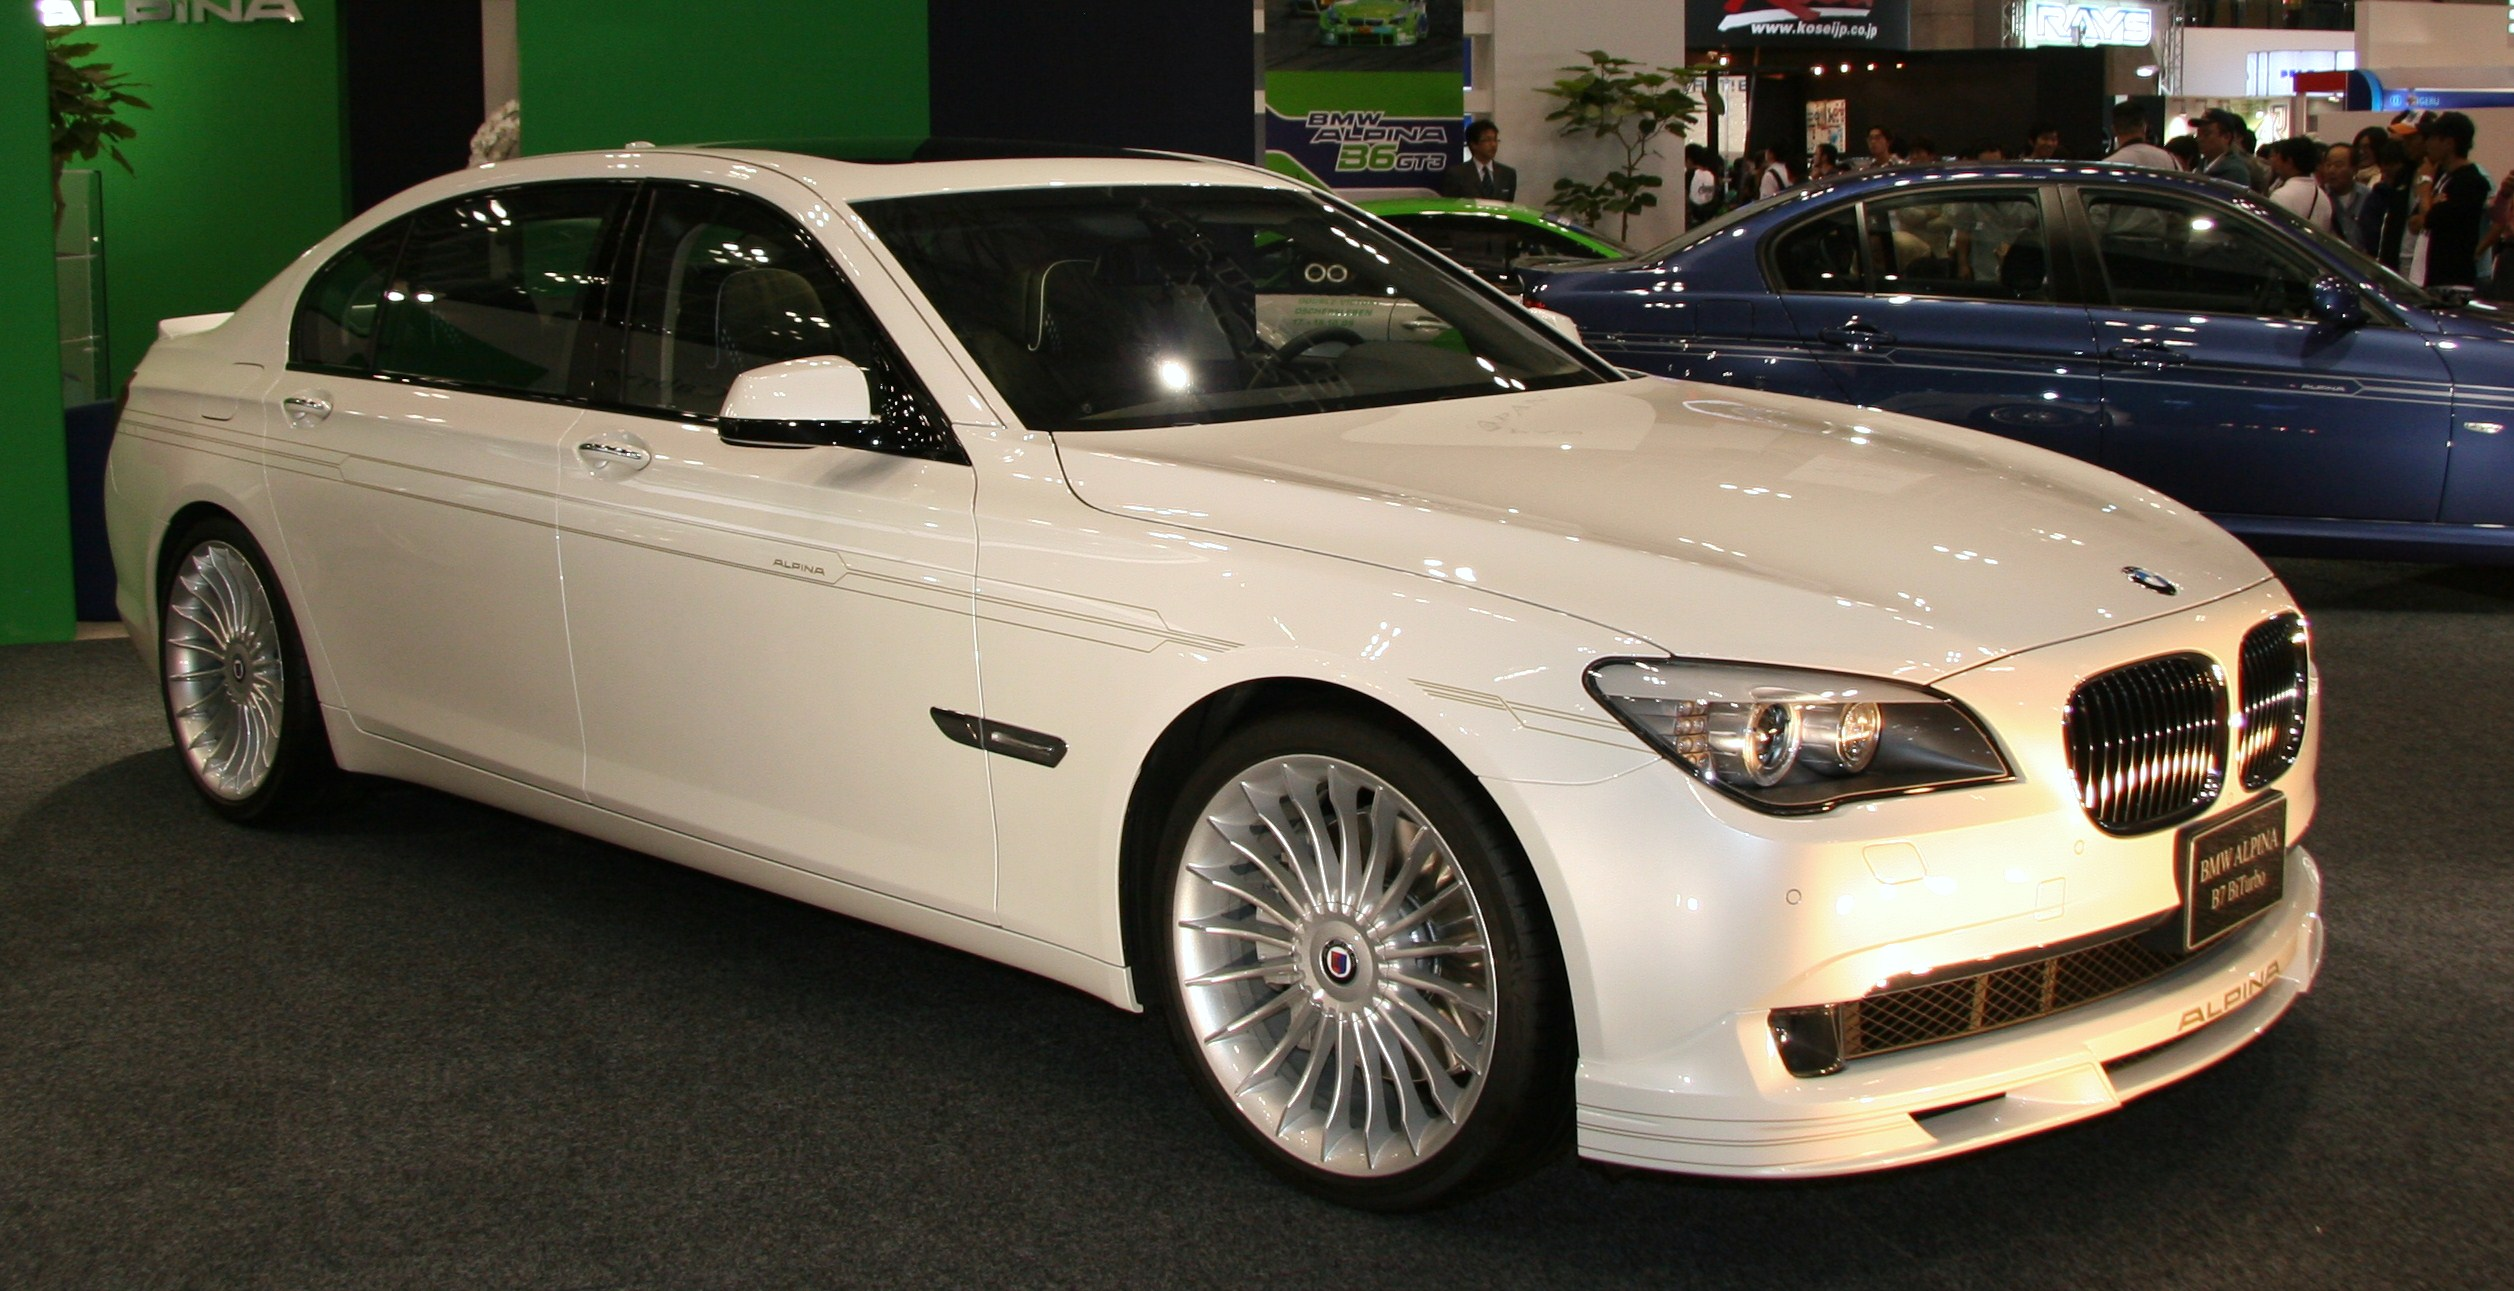 FileBMW Alpina B BiTurbo Limousine Longjpg Wikimedia Commons - Alpina bmw b7